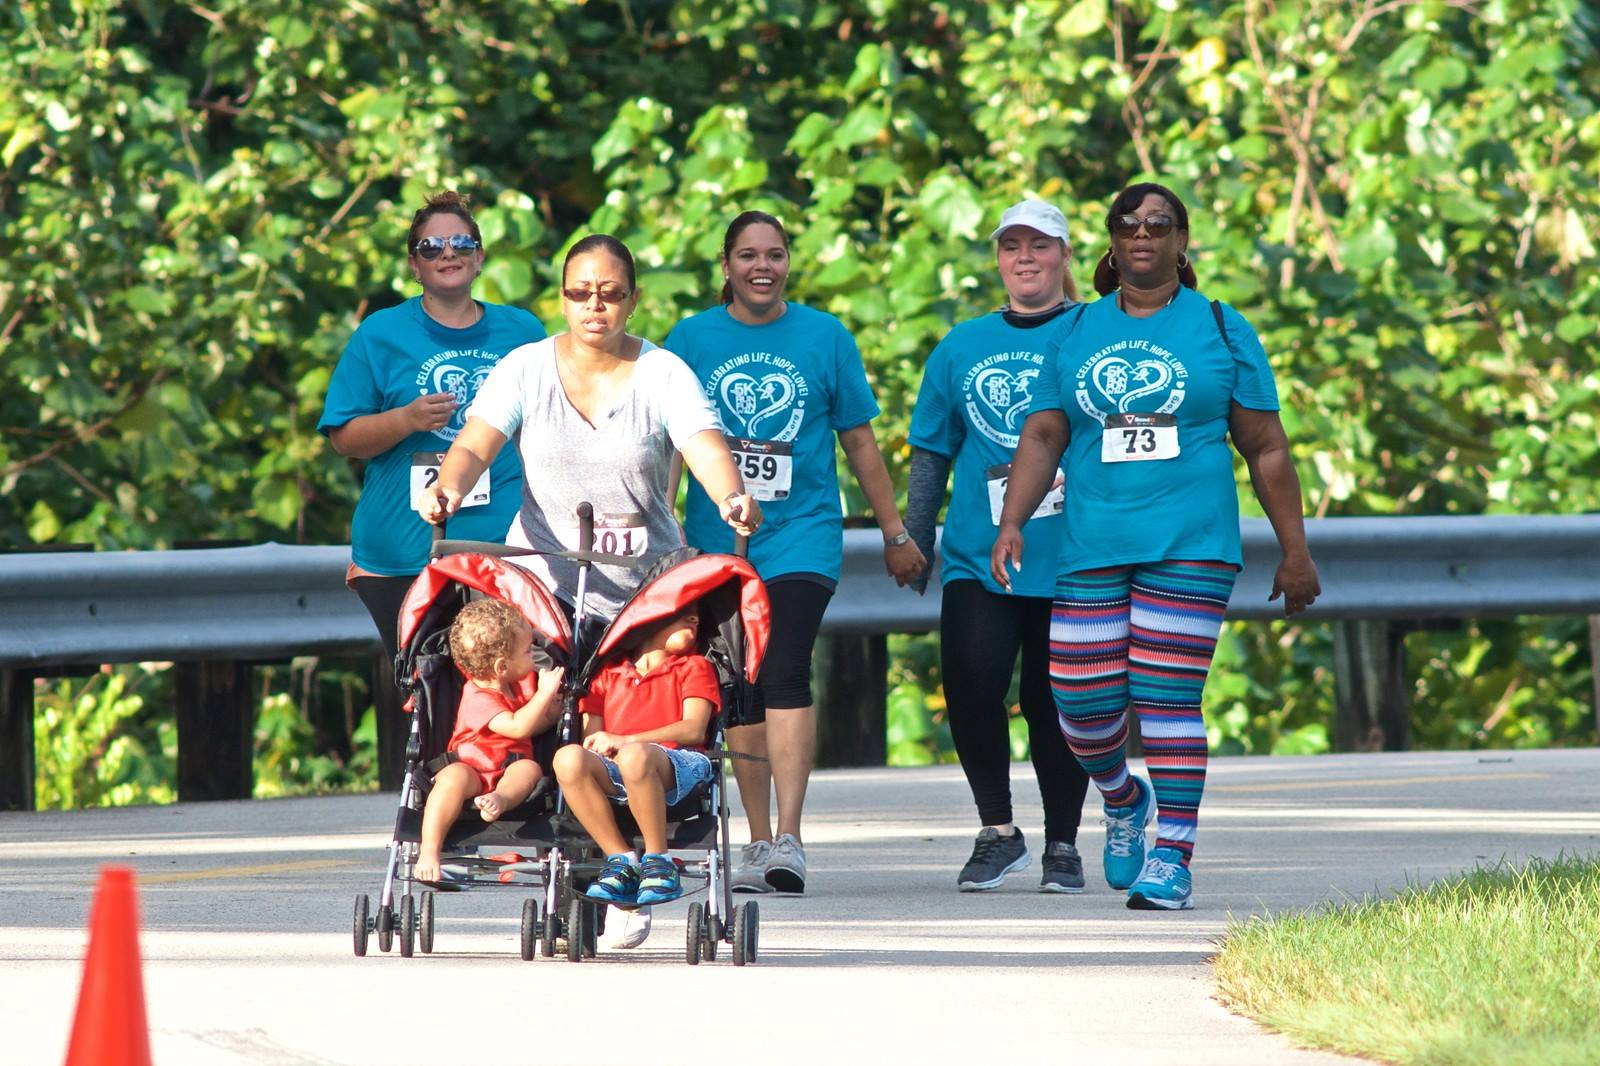 teal 10 - Florida Teal 5K Run/ Fun Walk 2016